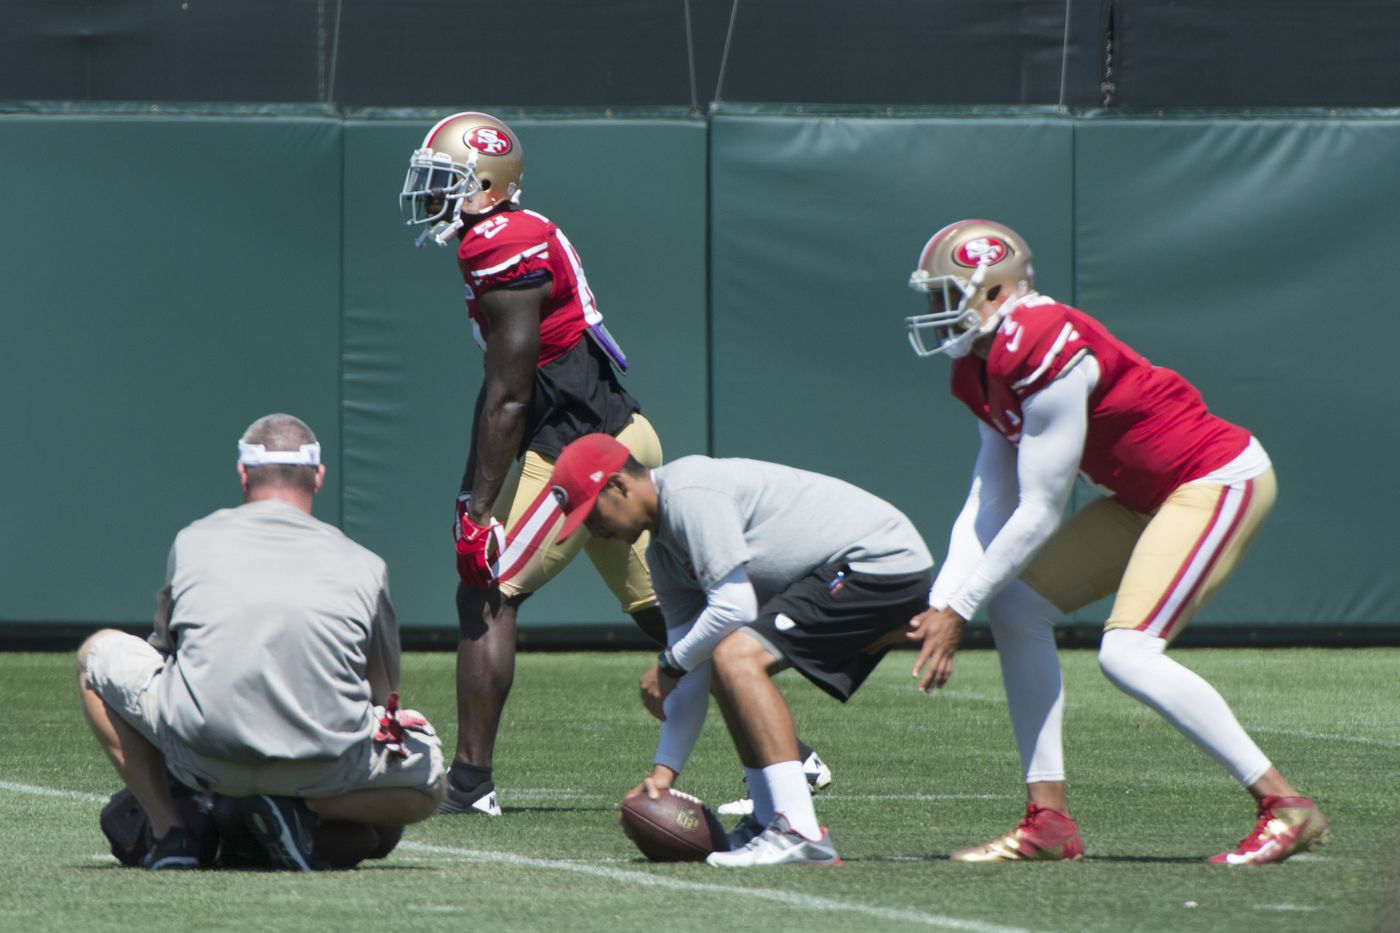 123901efa The 49ers have their first day off after four days of training camp practice.  We take a look at the developing story lines as the 49ers prepare for their  ...